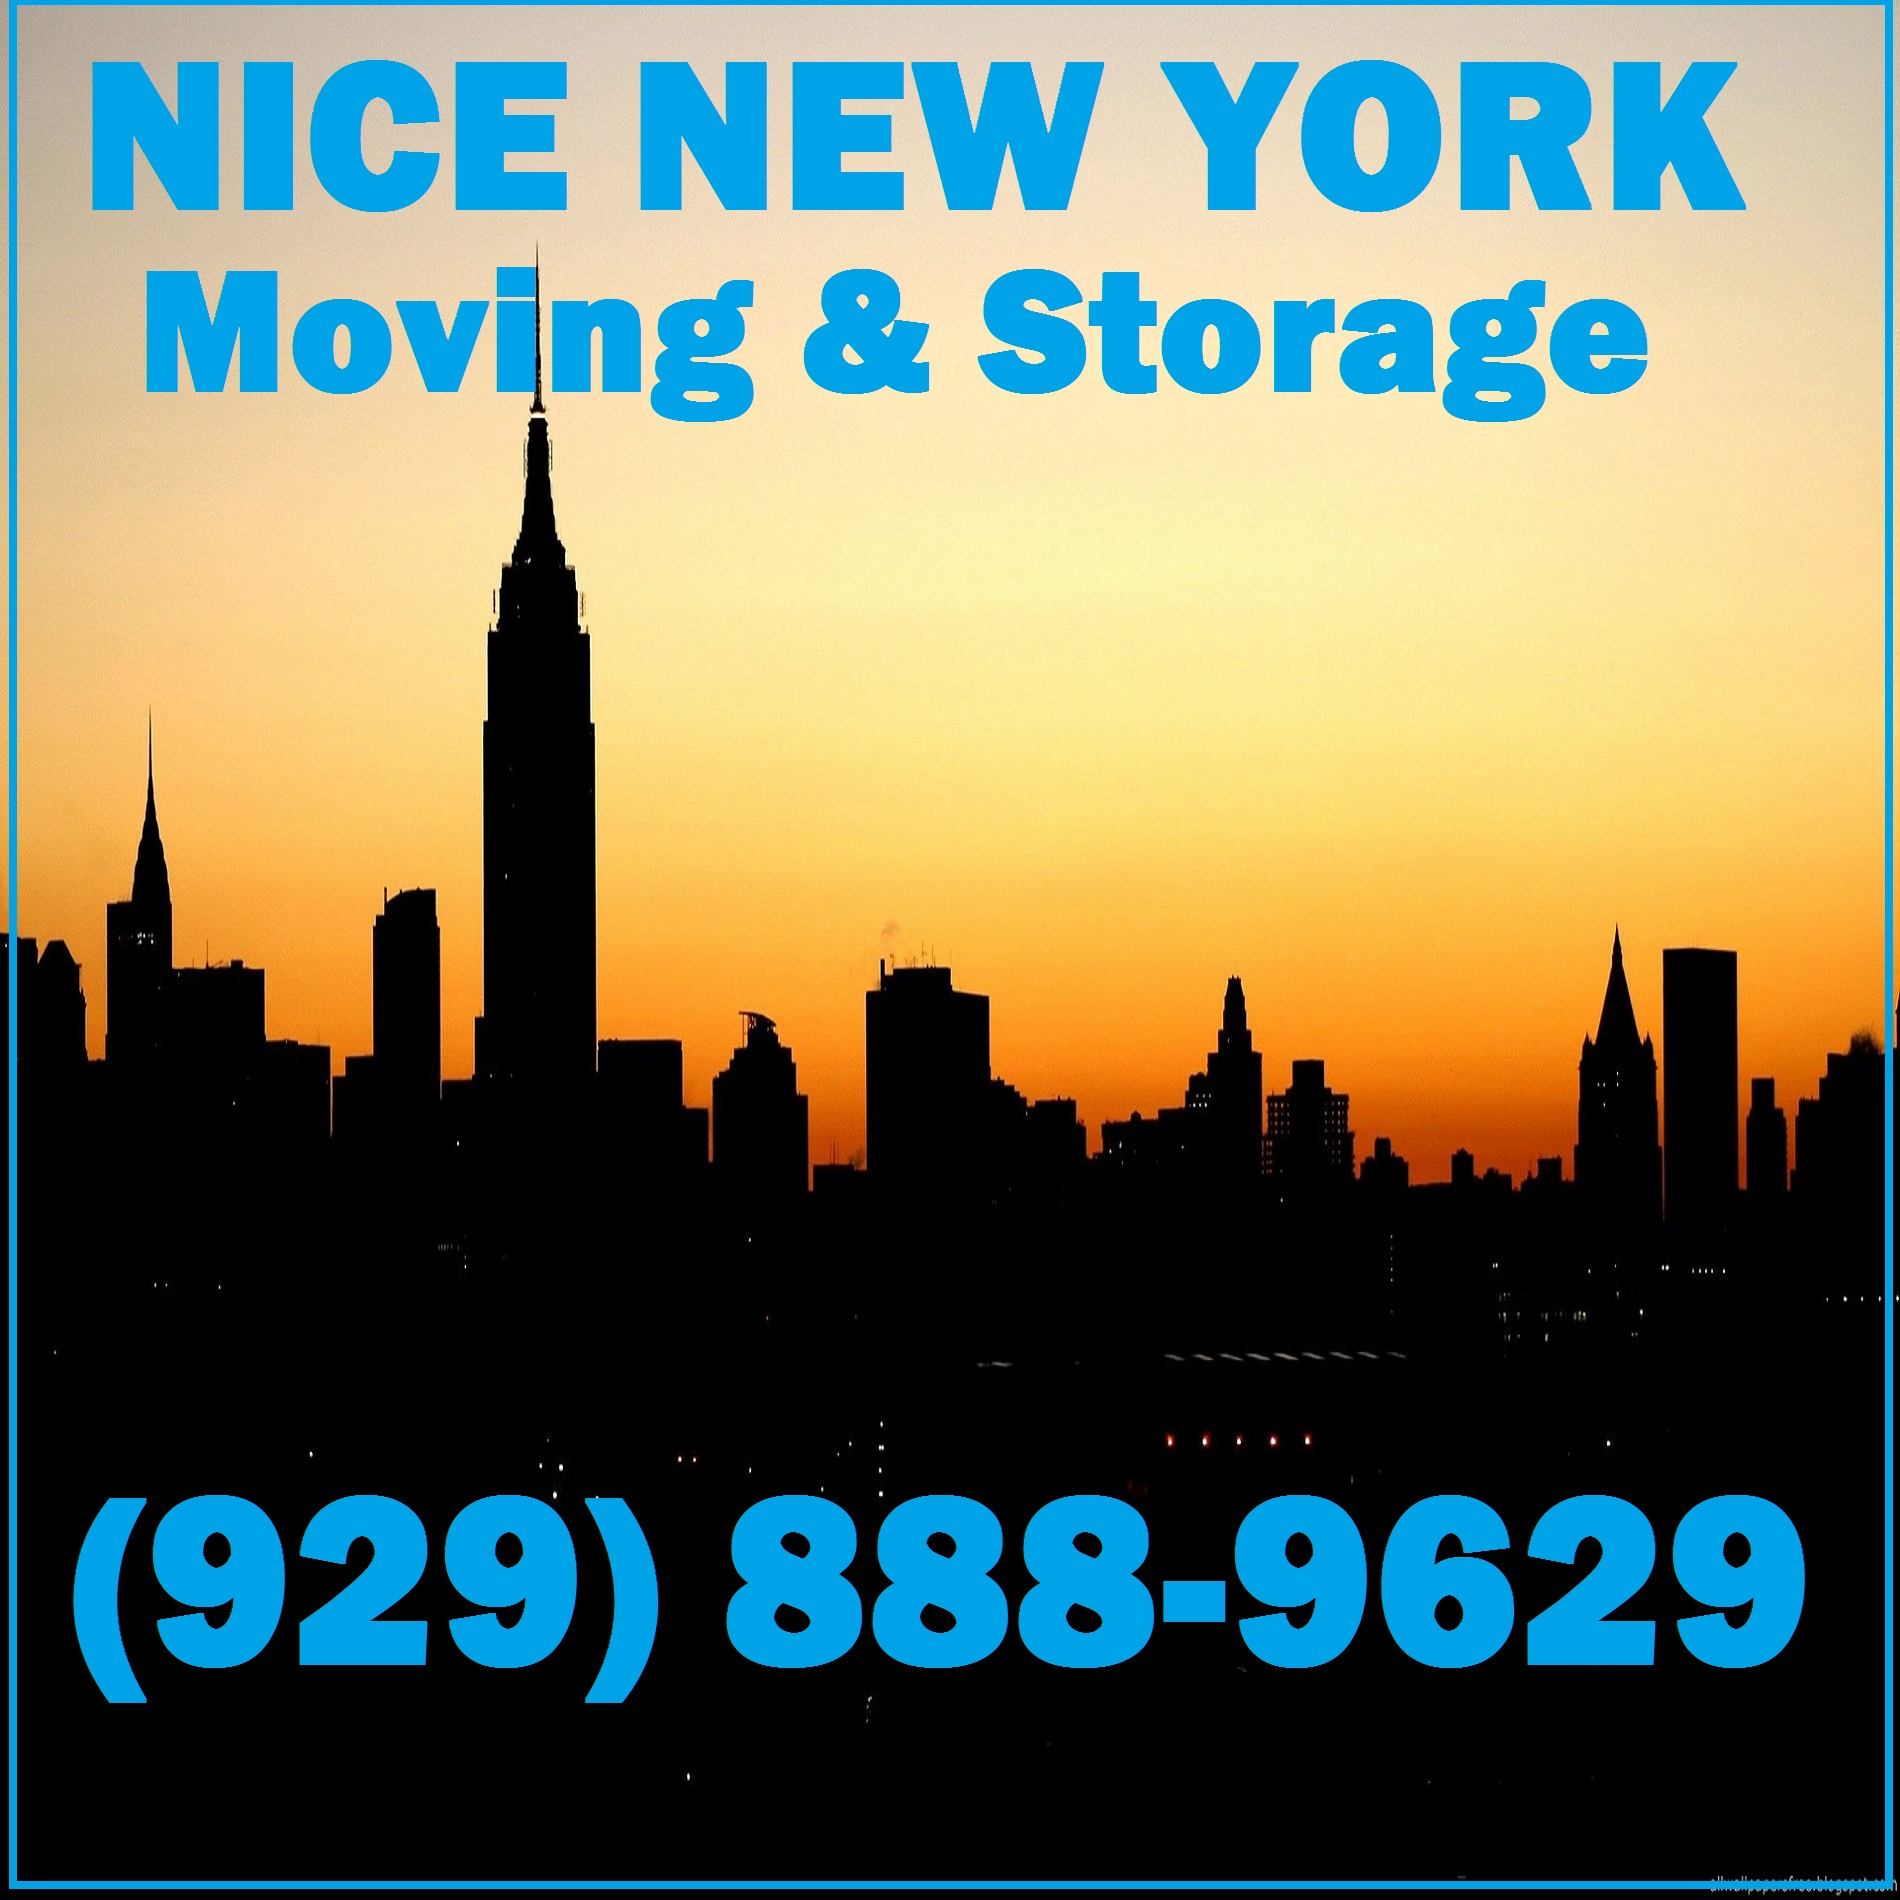 Nice New York Moving and Storage